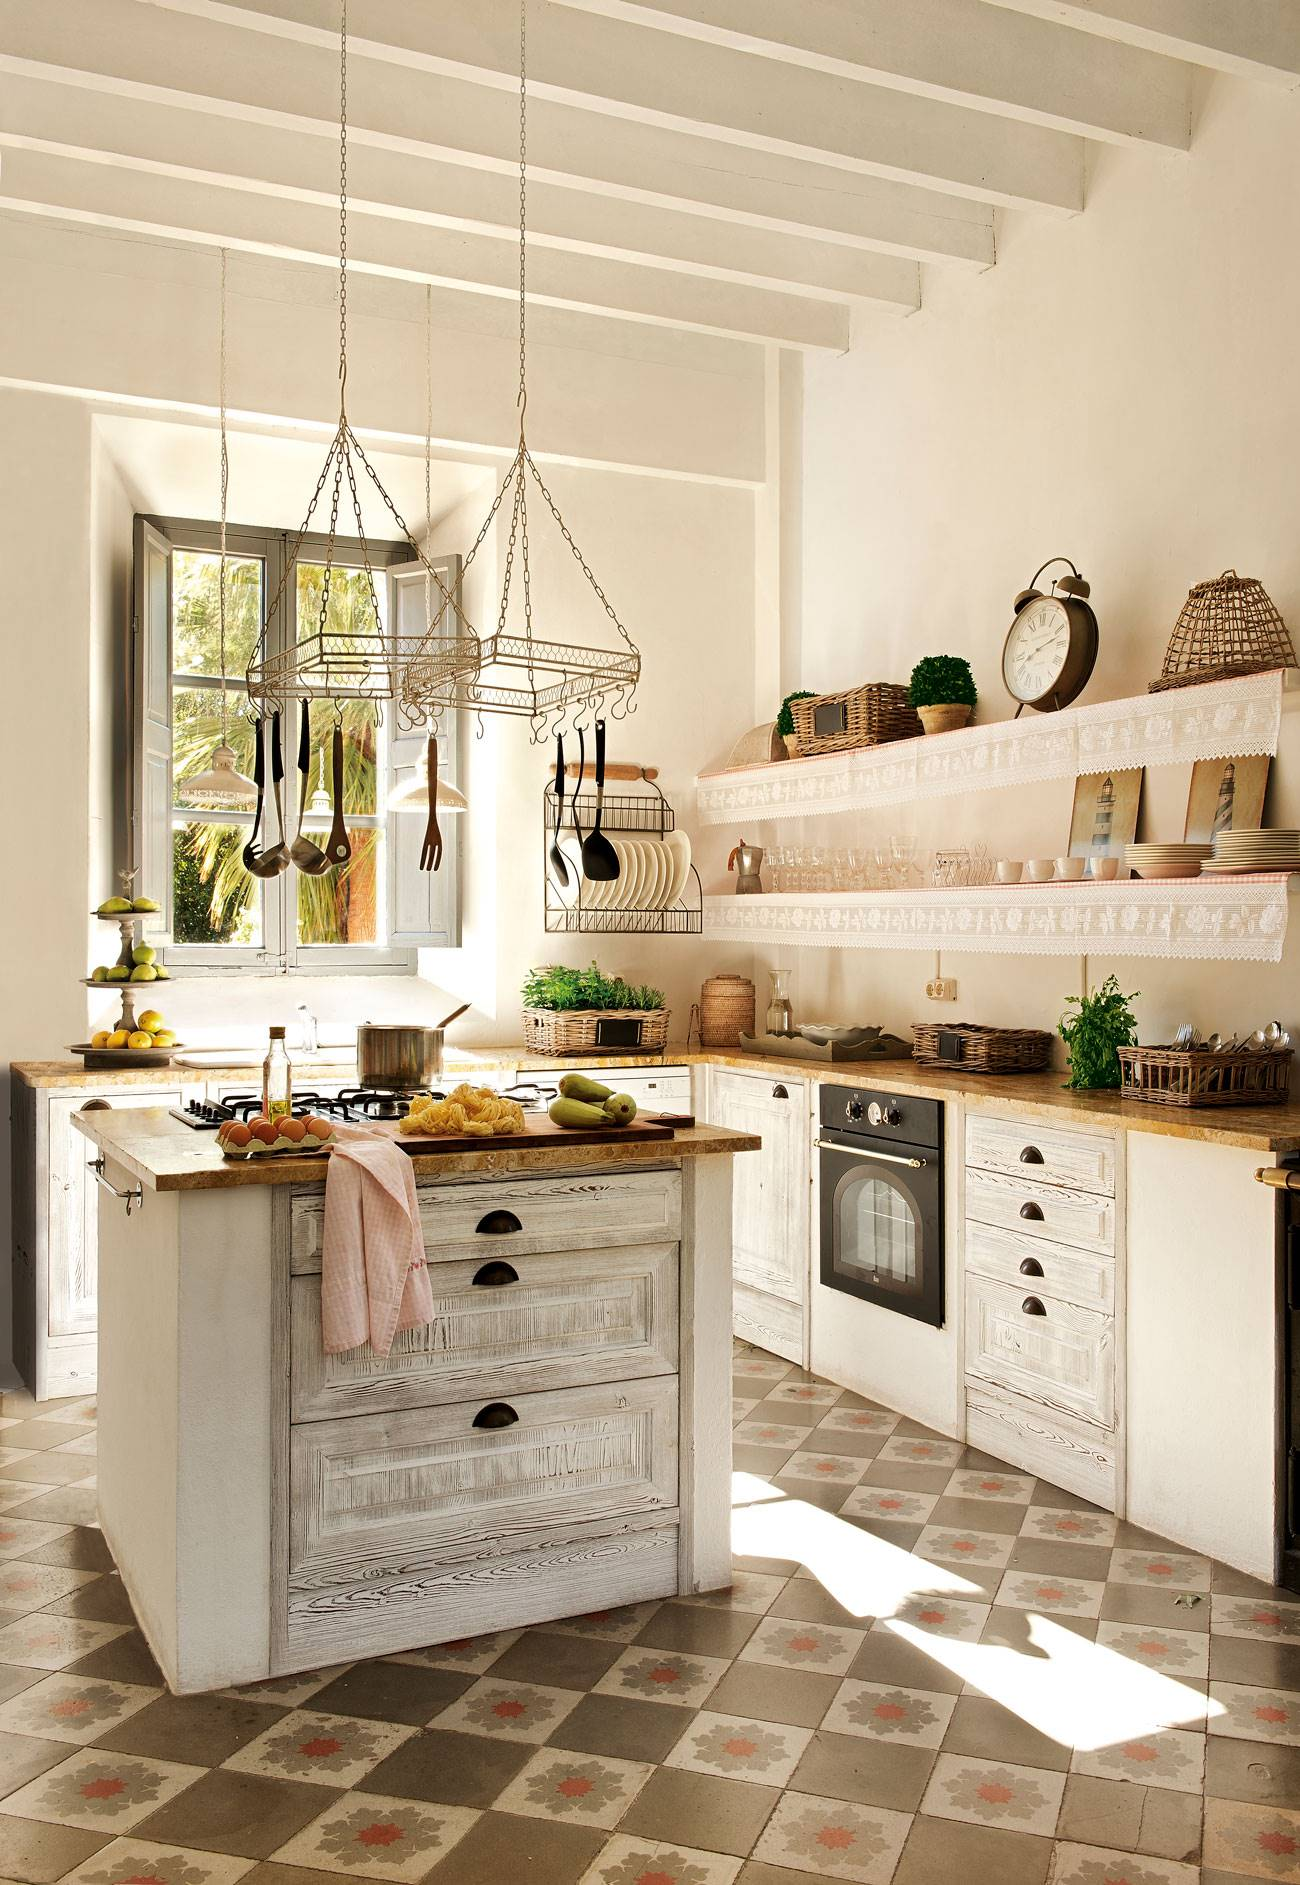 kitchen-hydraulic-floor-and-island-of-wood-white 378433. The new vintage, market style kitchen